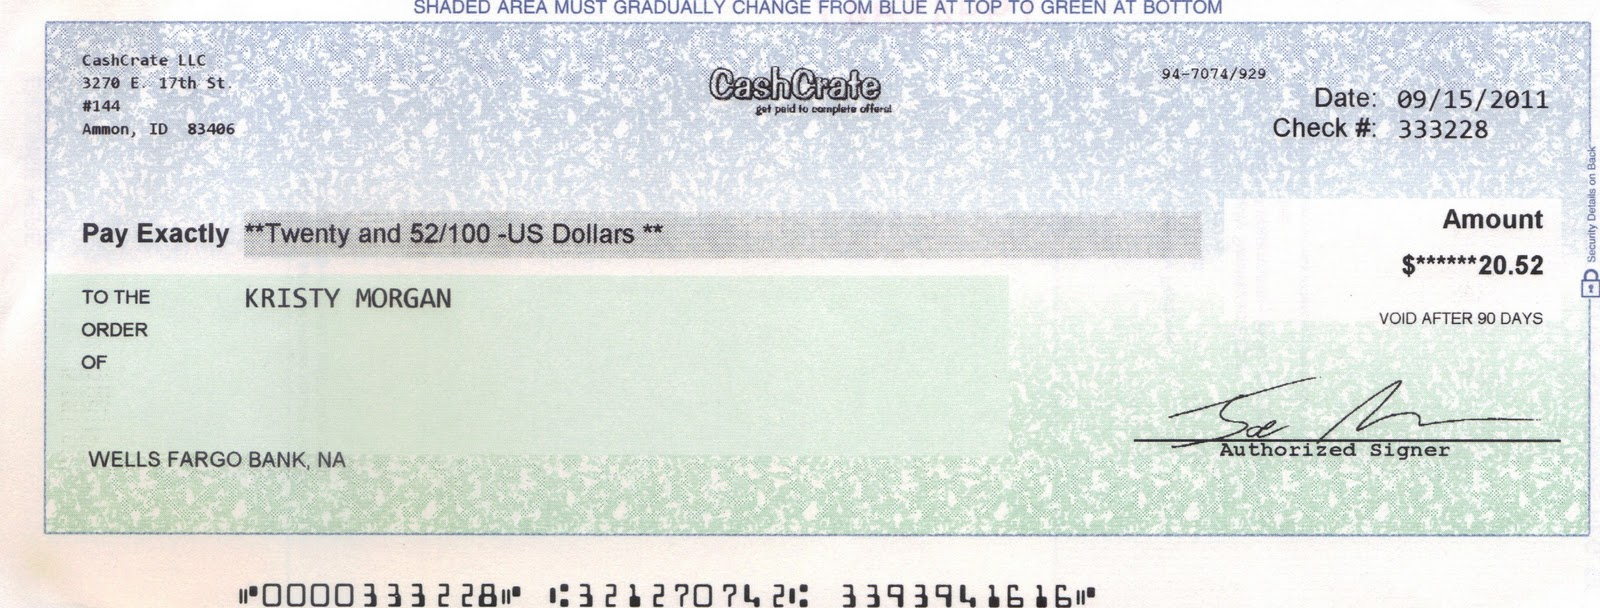 how to write a check with thousands and cents